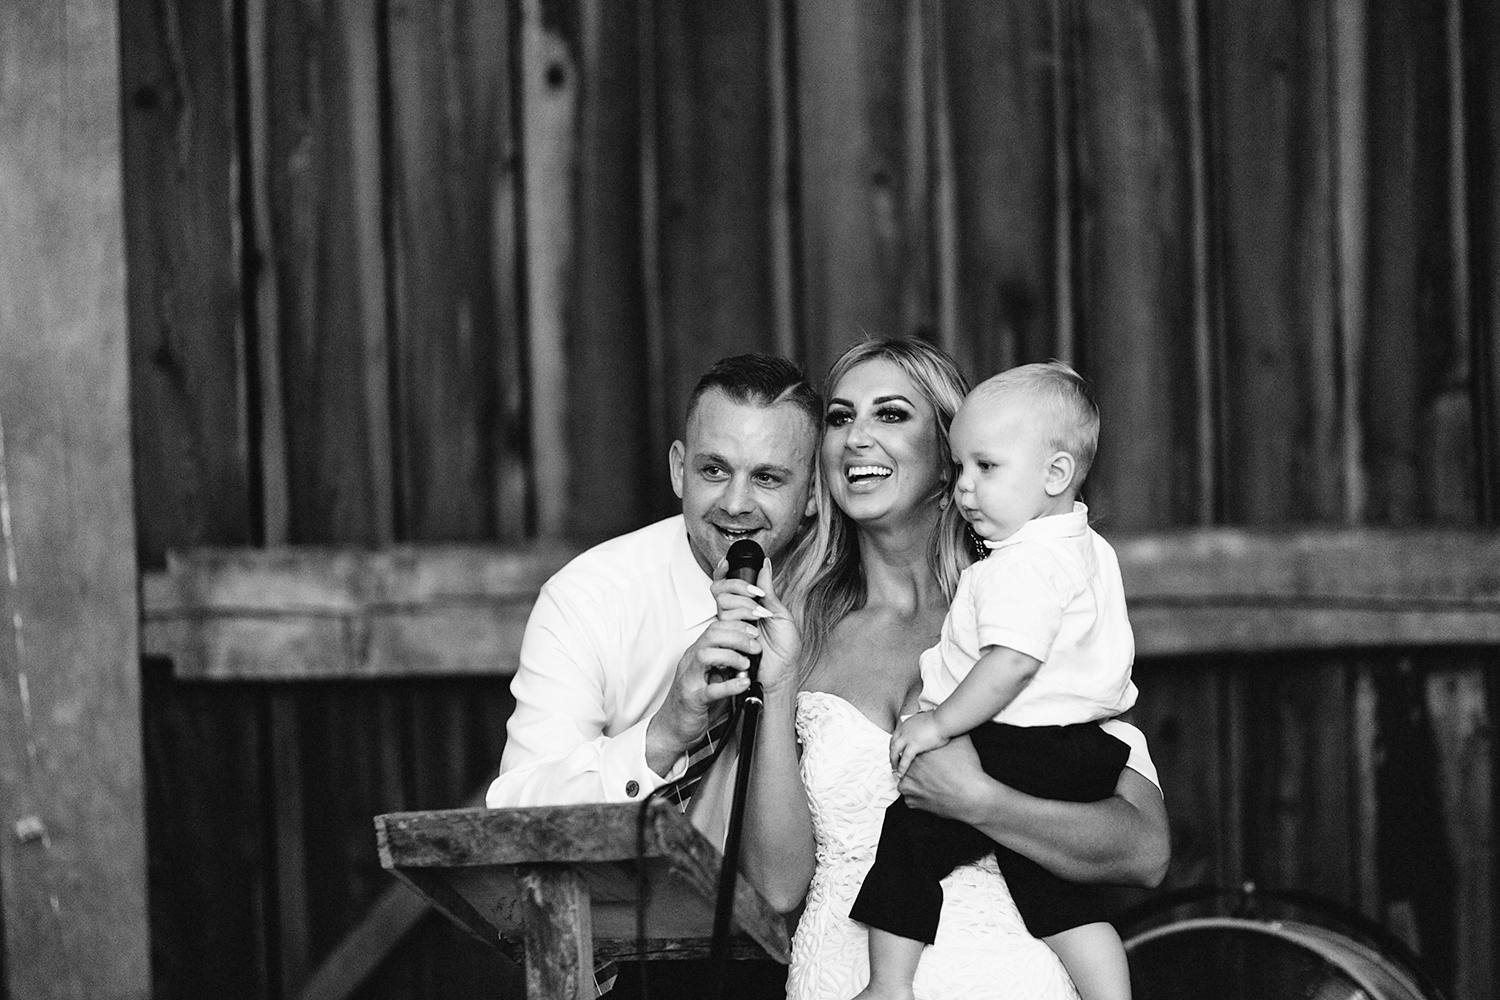 Documentary-Wedding-Photographers-in-Toronto-Candid-Natural-Dowswell-Barn-Wedding-Rustic-GTA-Muskoka-Farm-romantic-barn-golden-light-speeches-bride-and-groom-and-son-cute-candid-beauitful.jpg